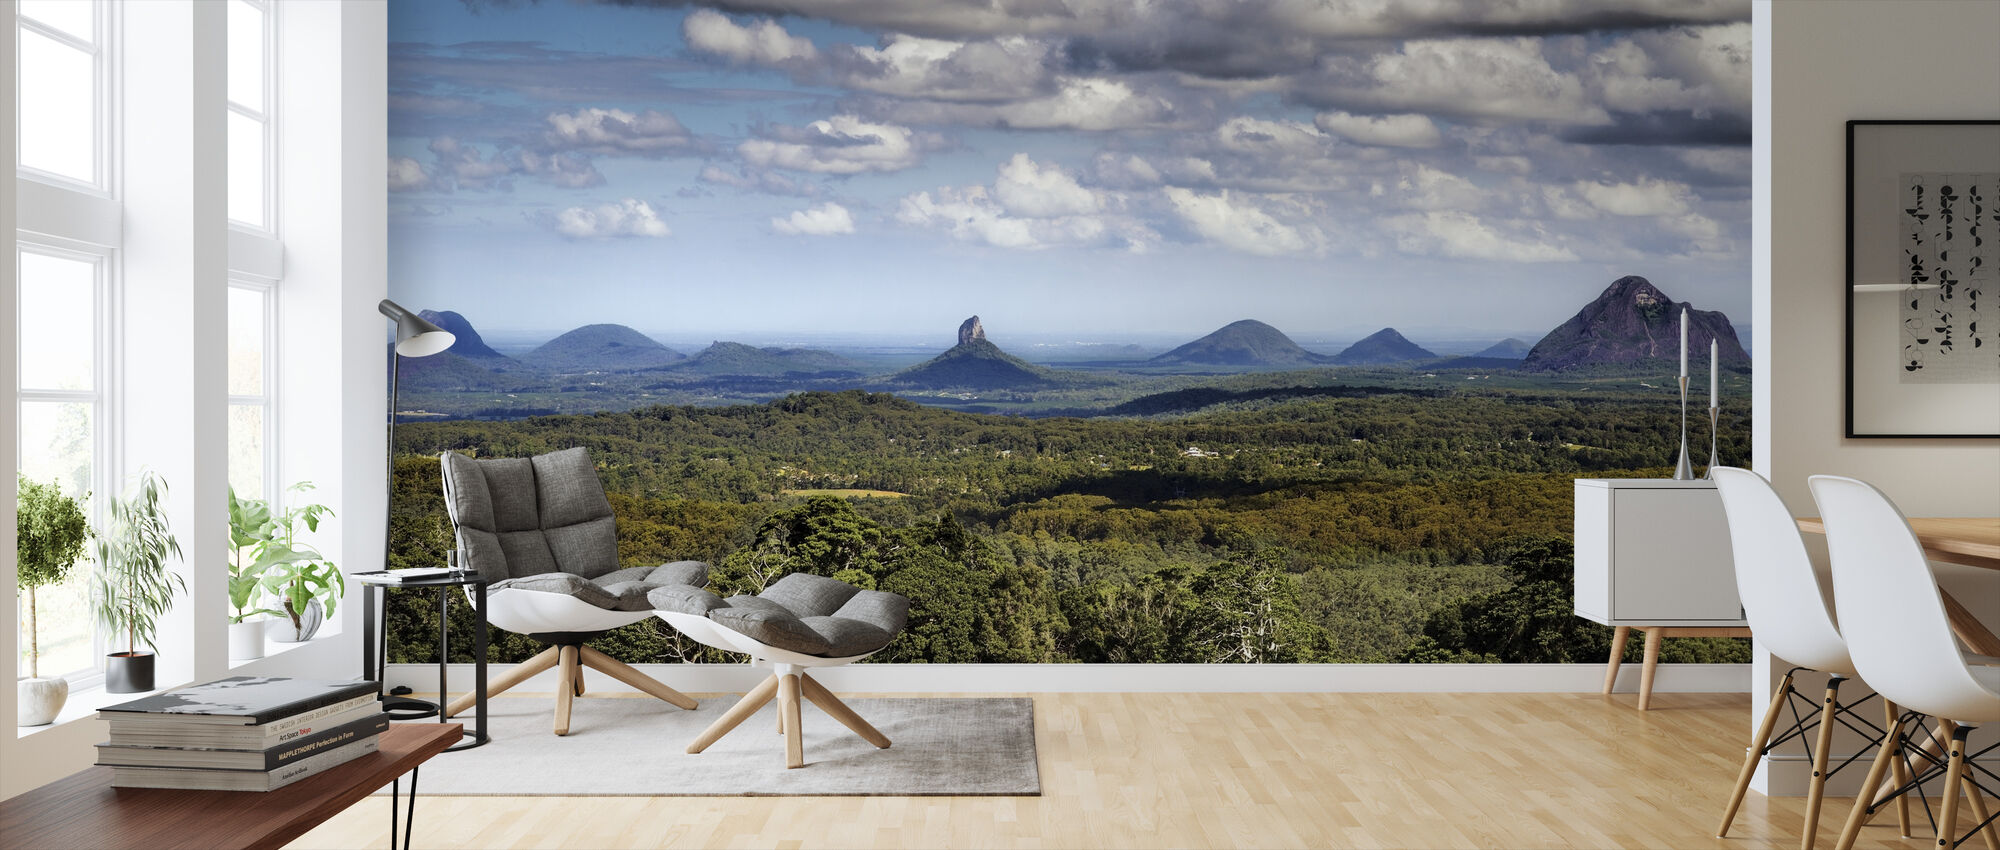 Glasshouse Mountains - Wallpaper - Living Room